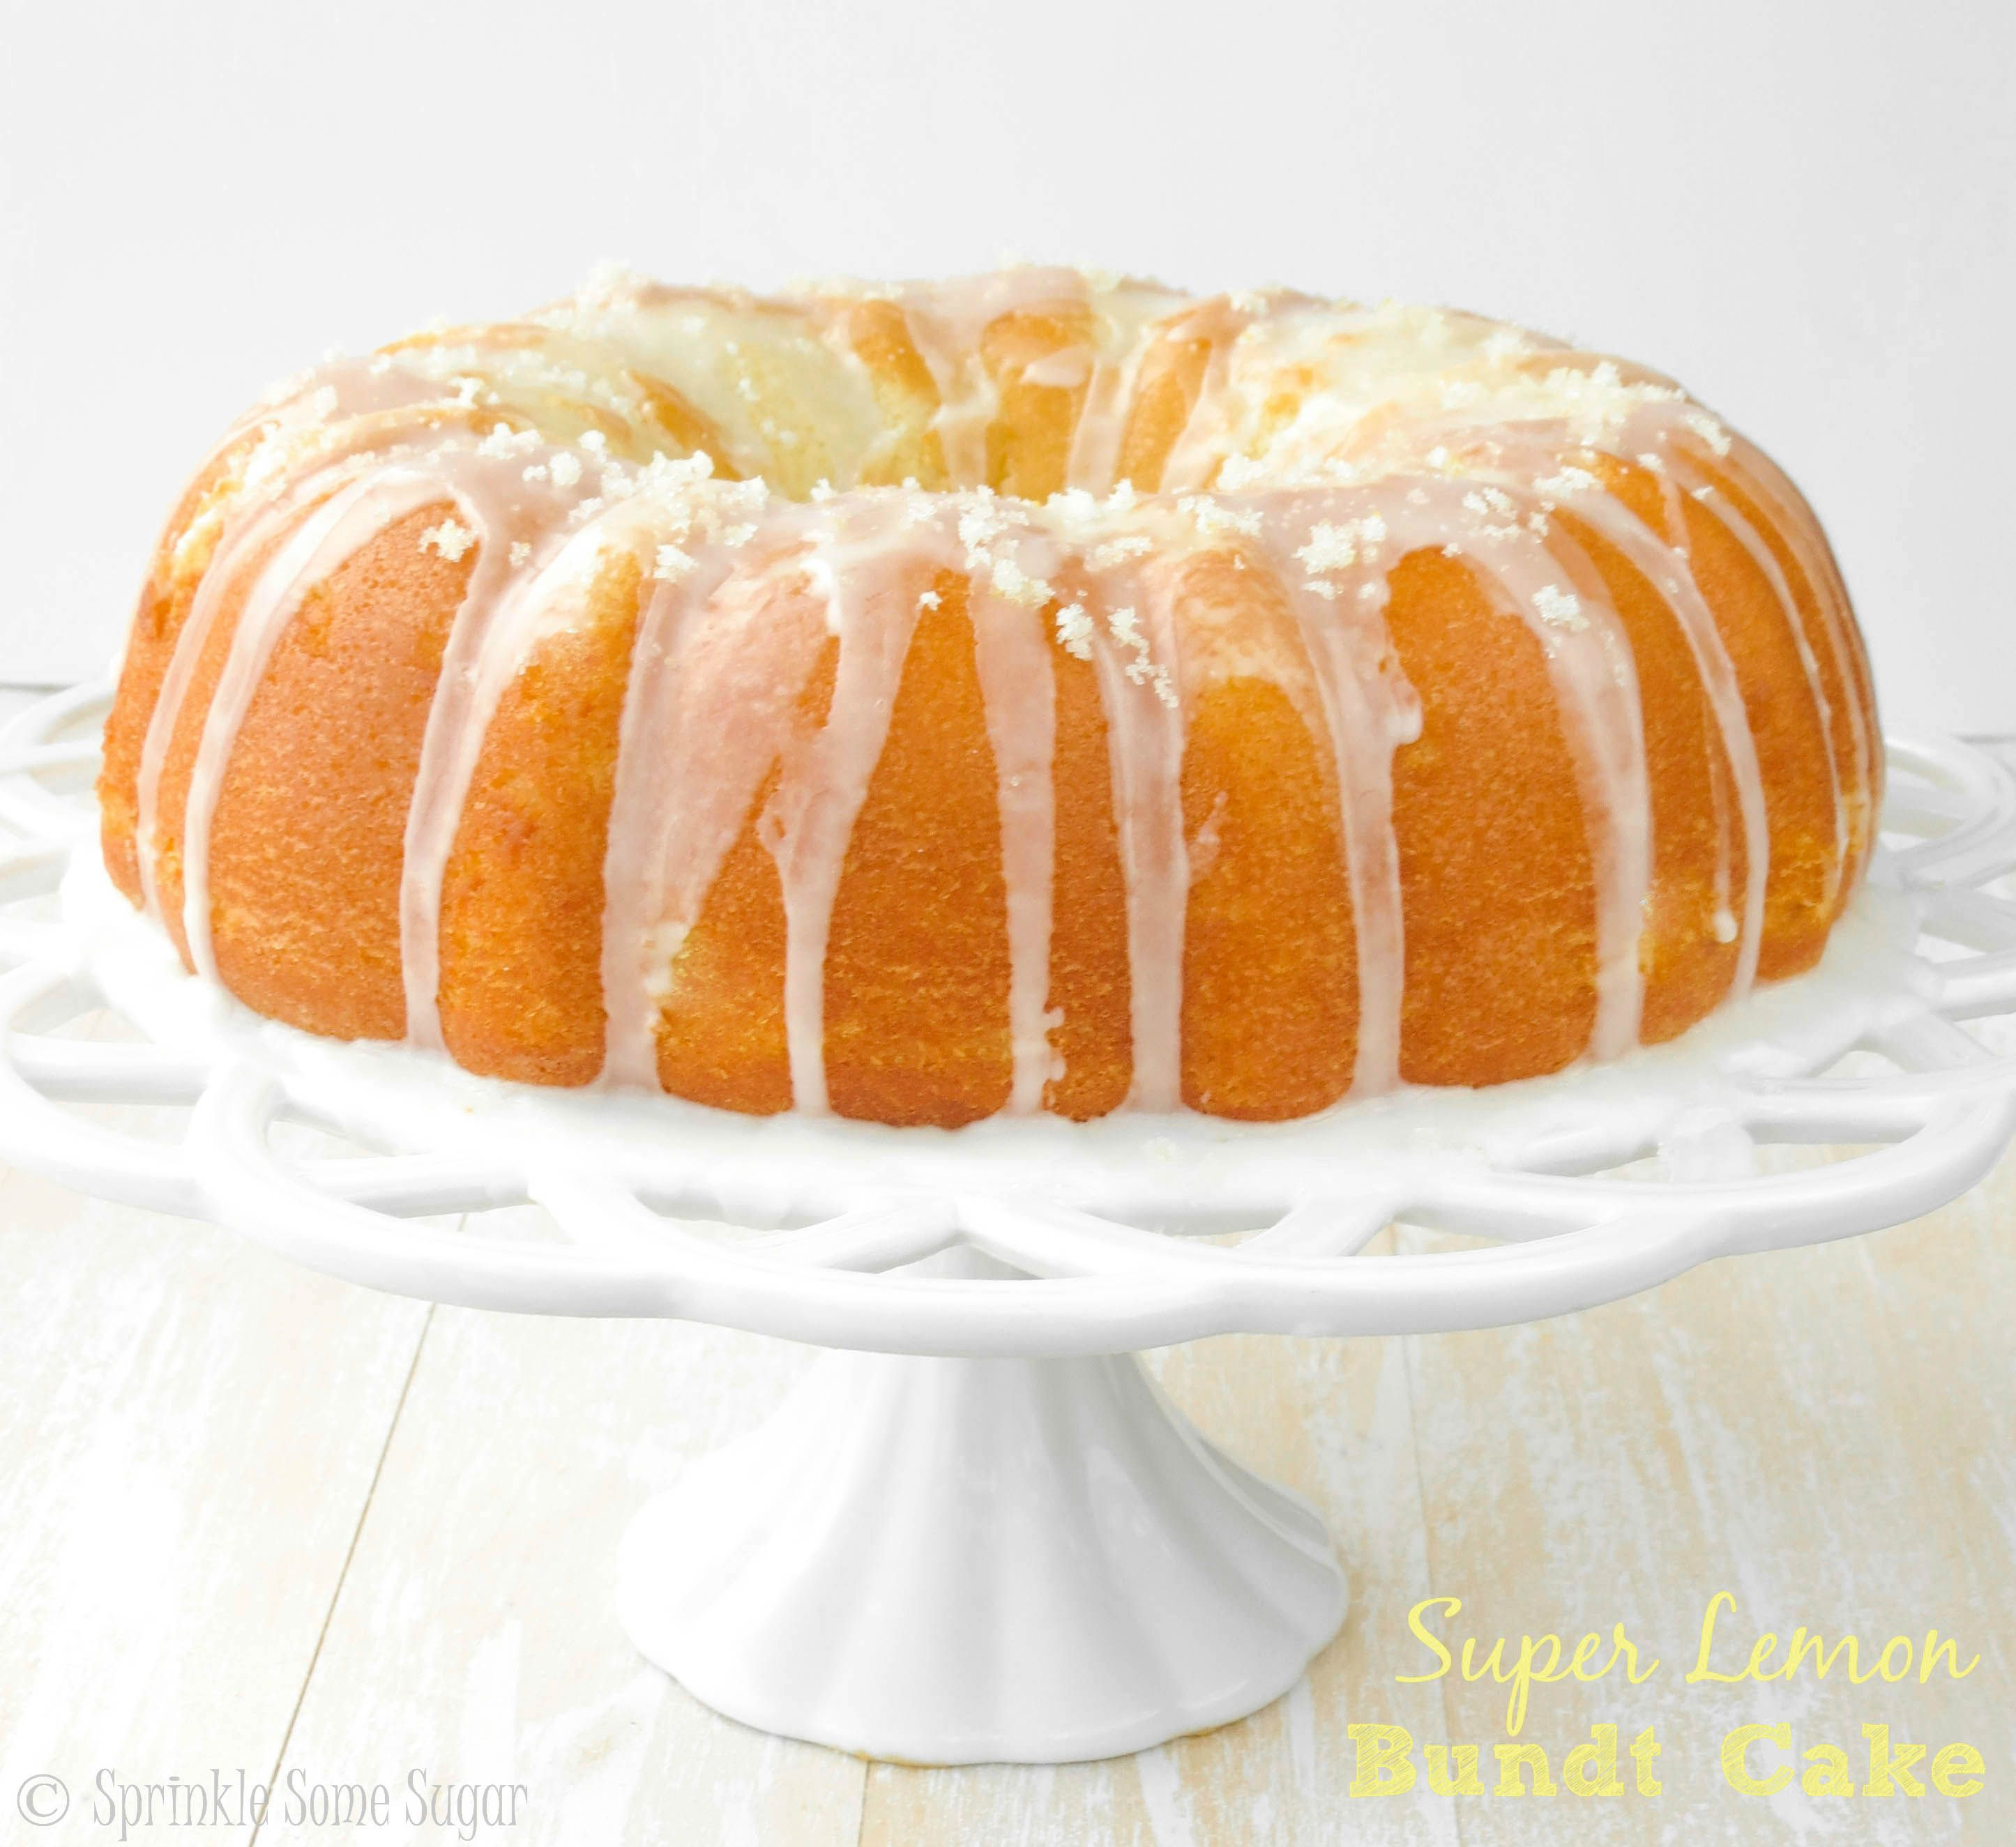 Healthy lemon bundt cake recipes